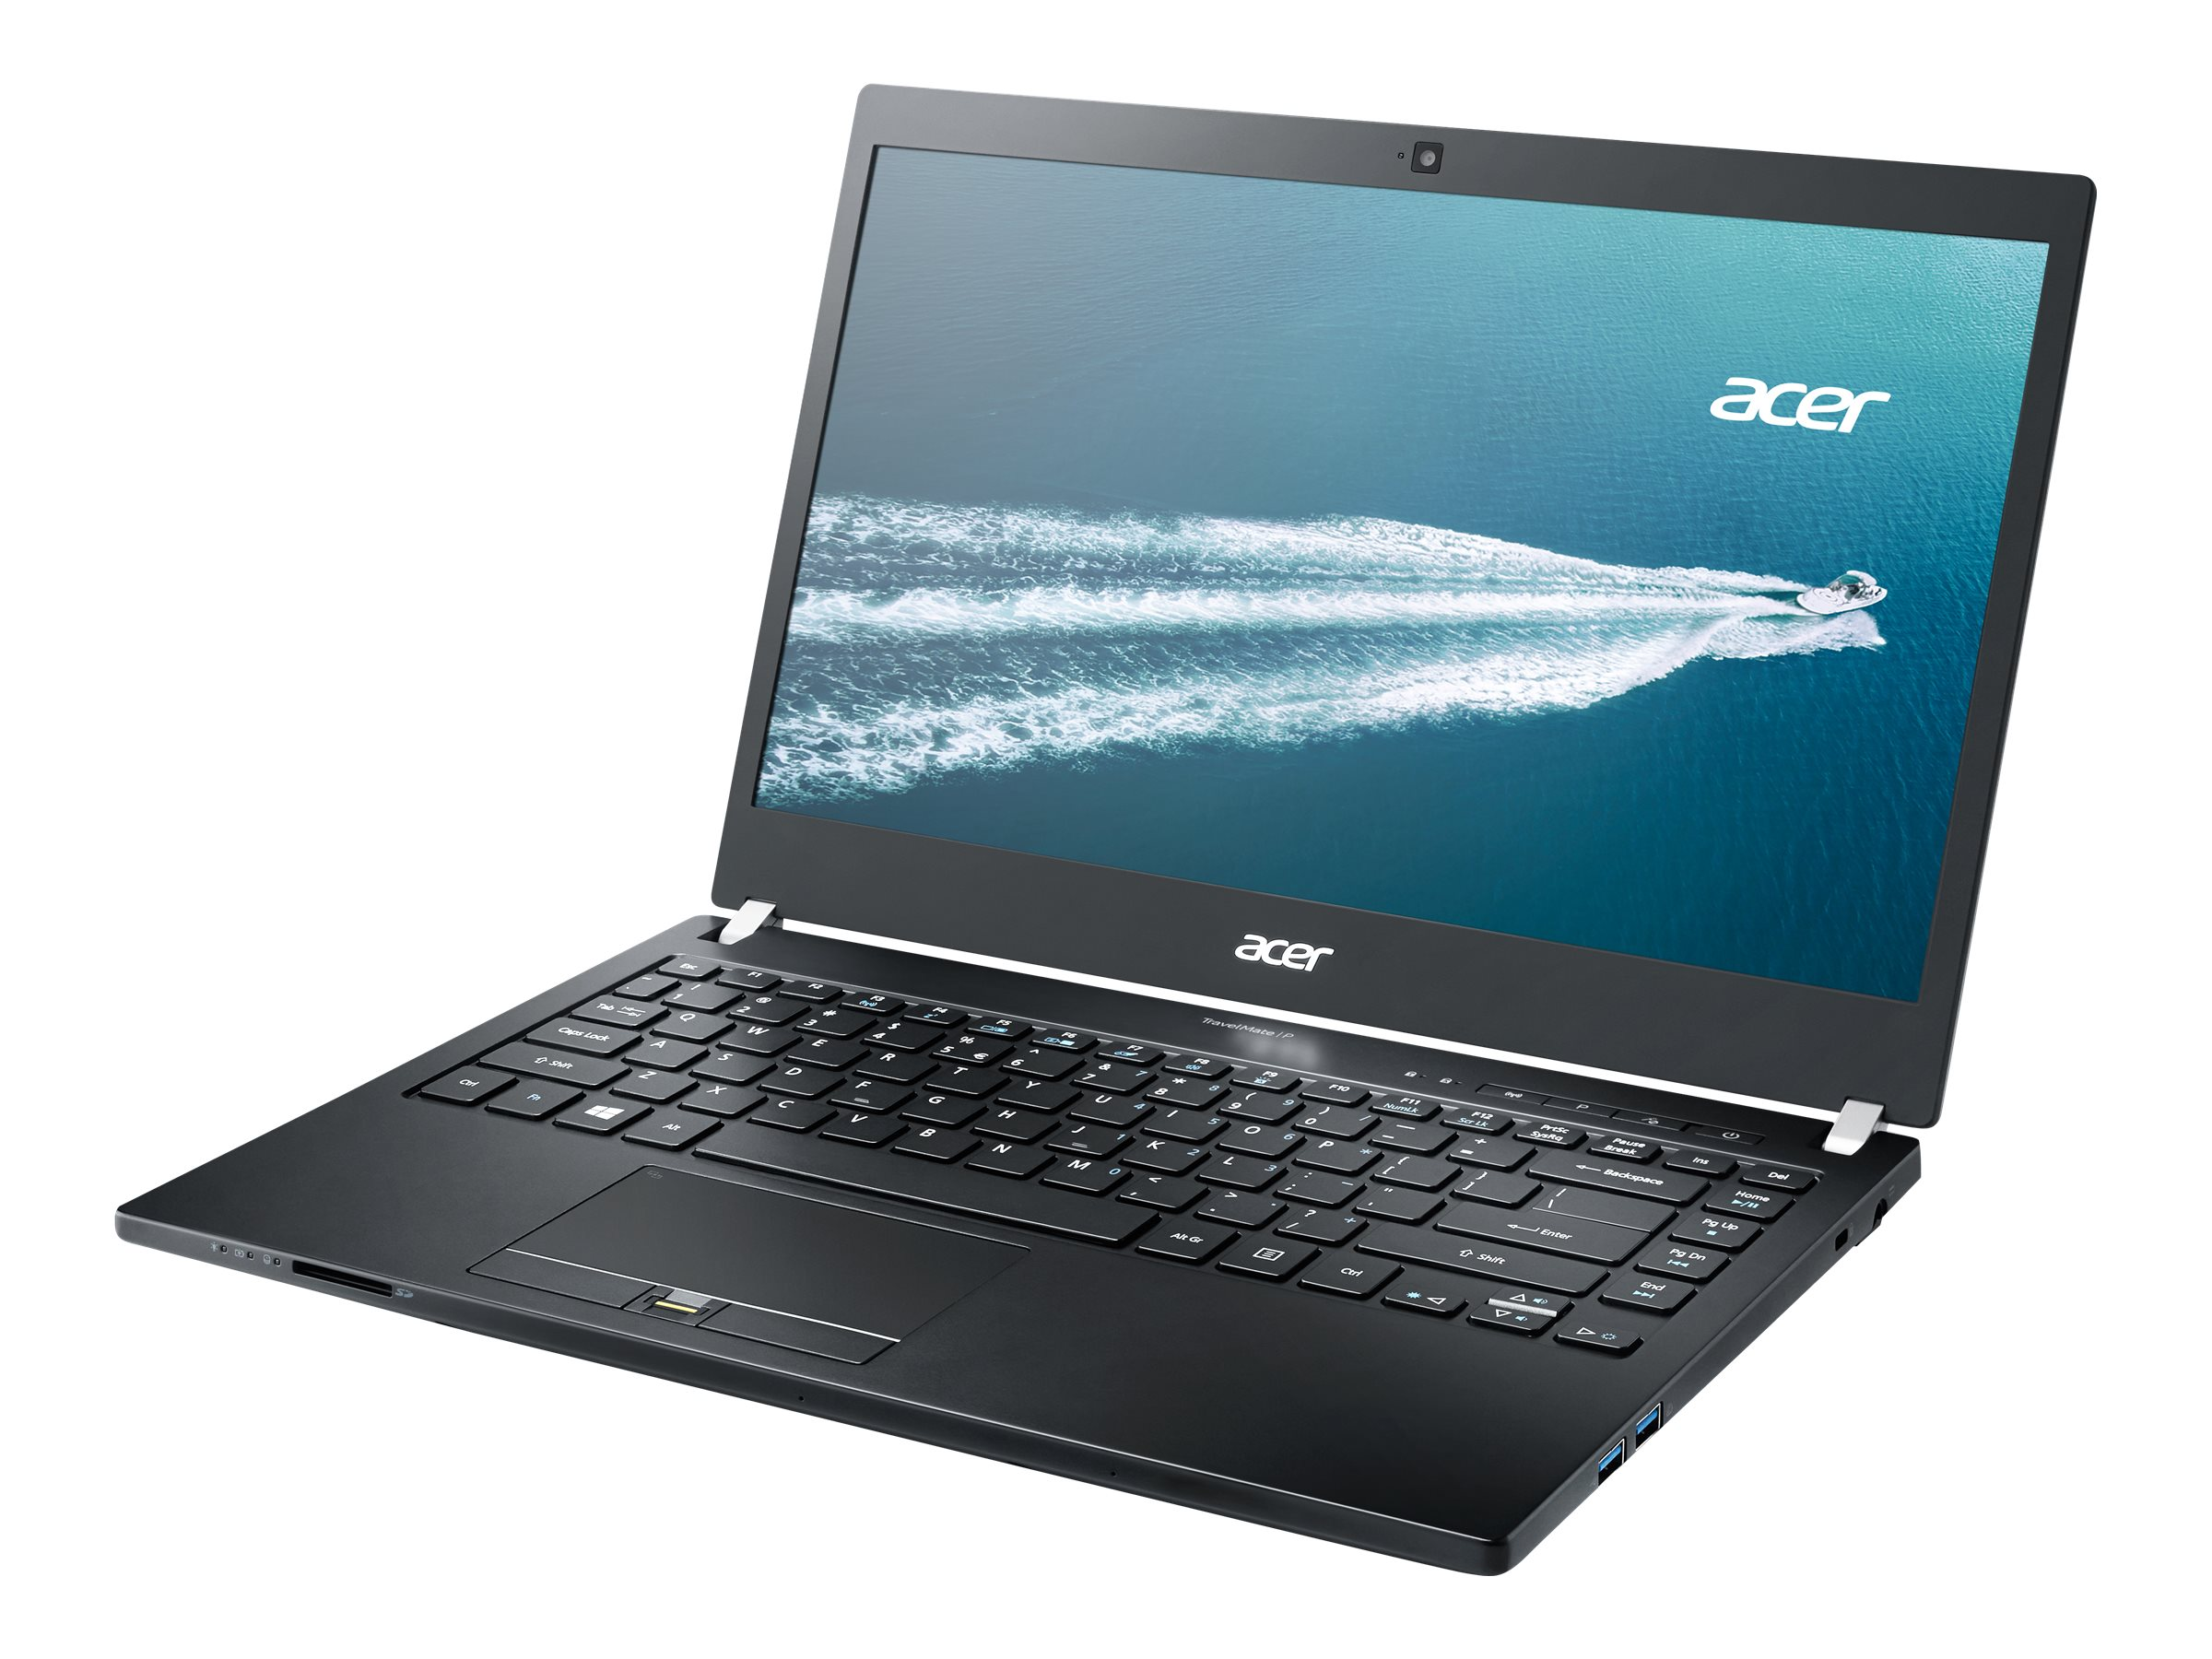 Acer TravelMate P645-M-3862 1.7GHz Core i3 14in display